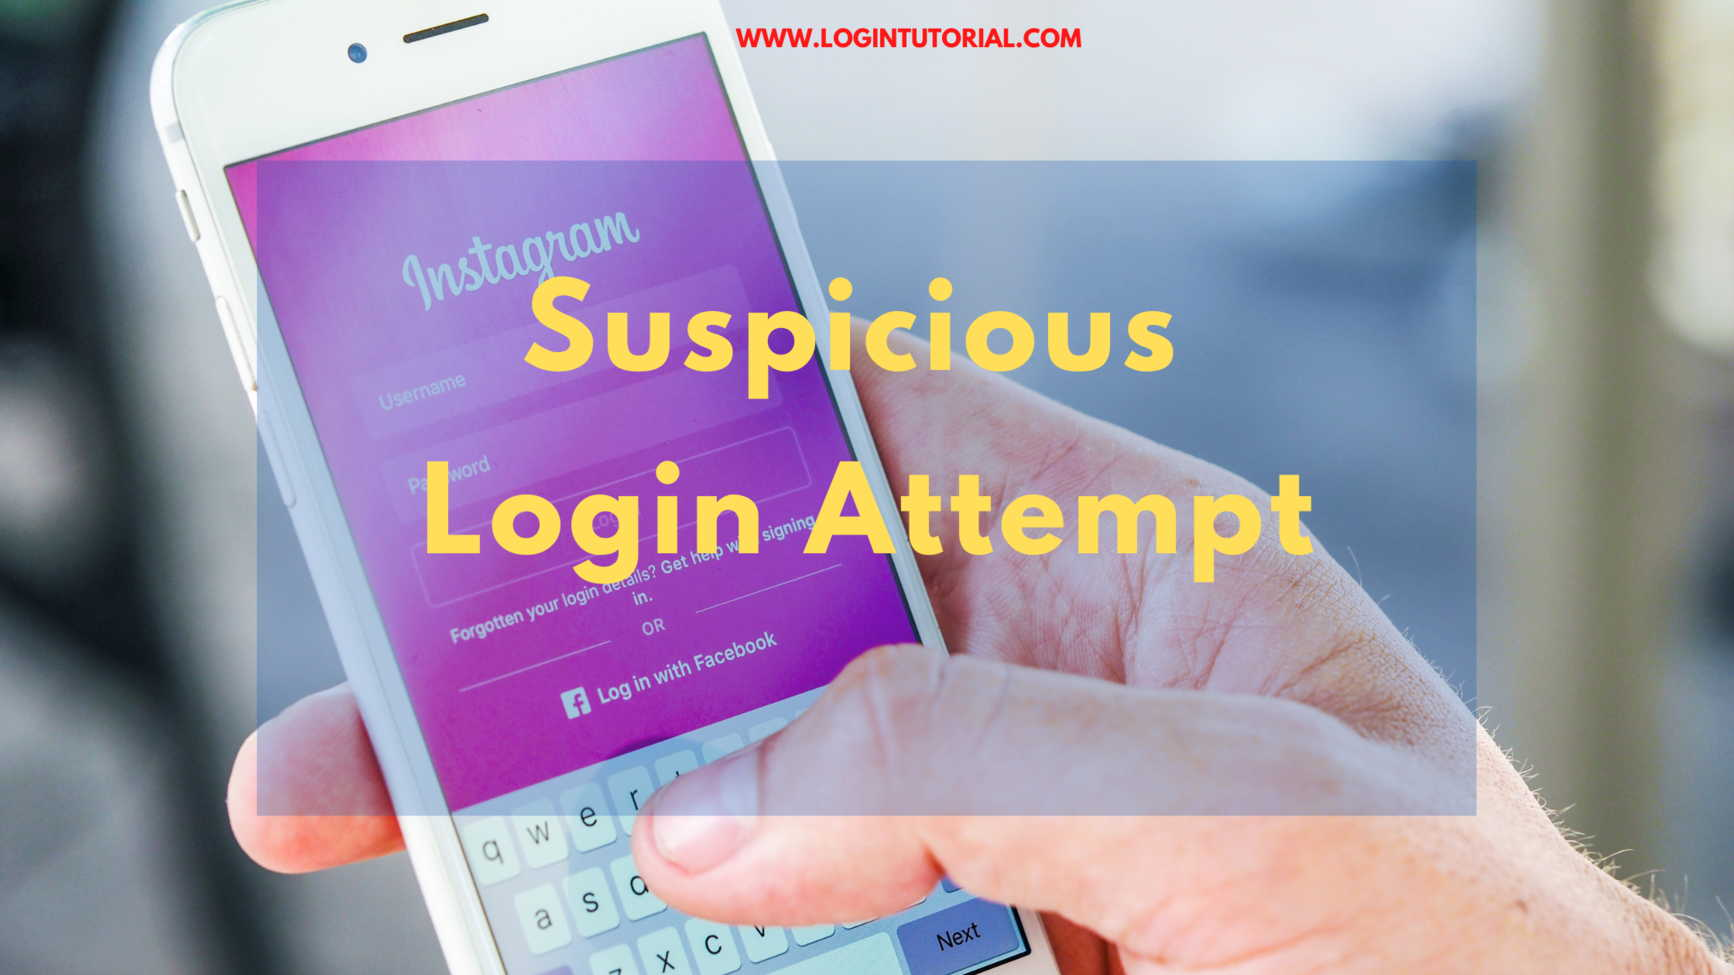 The solution to Suspicious login attempt on Instagram